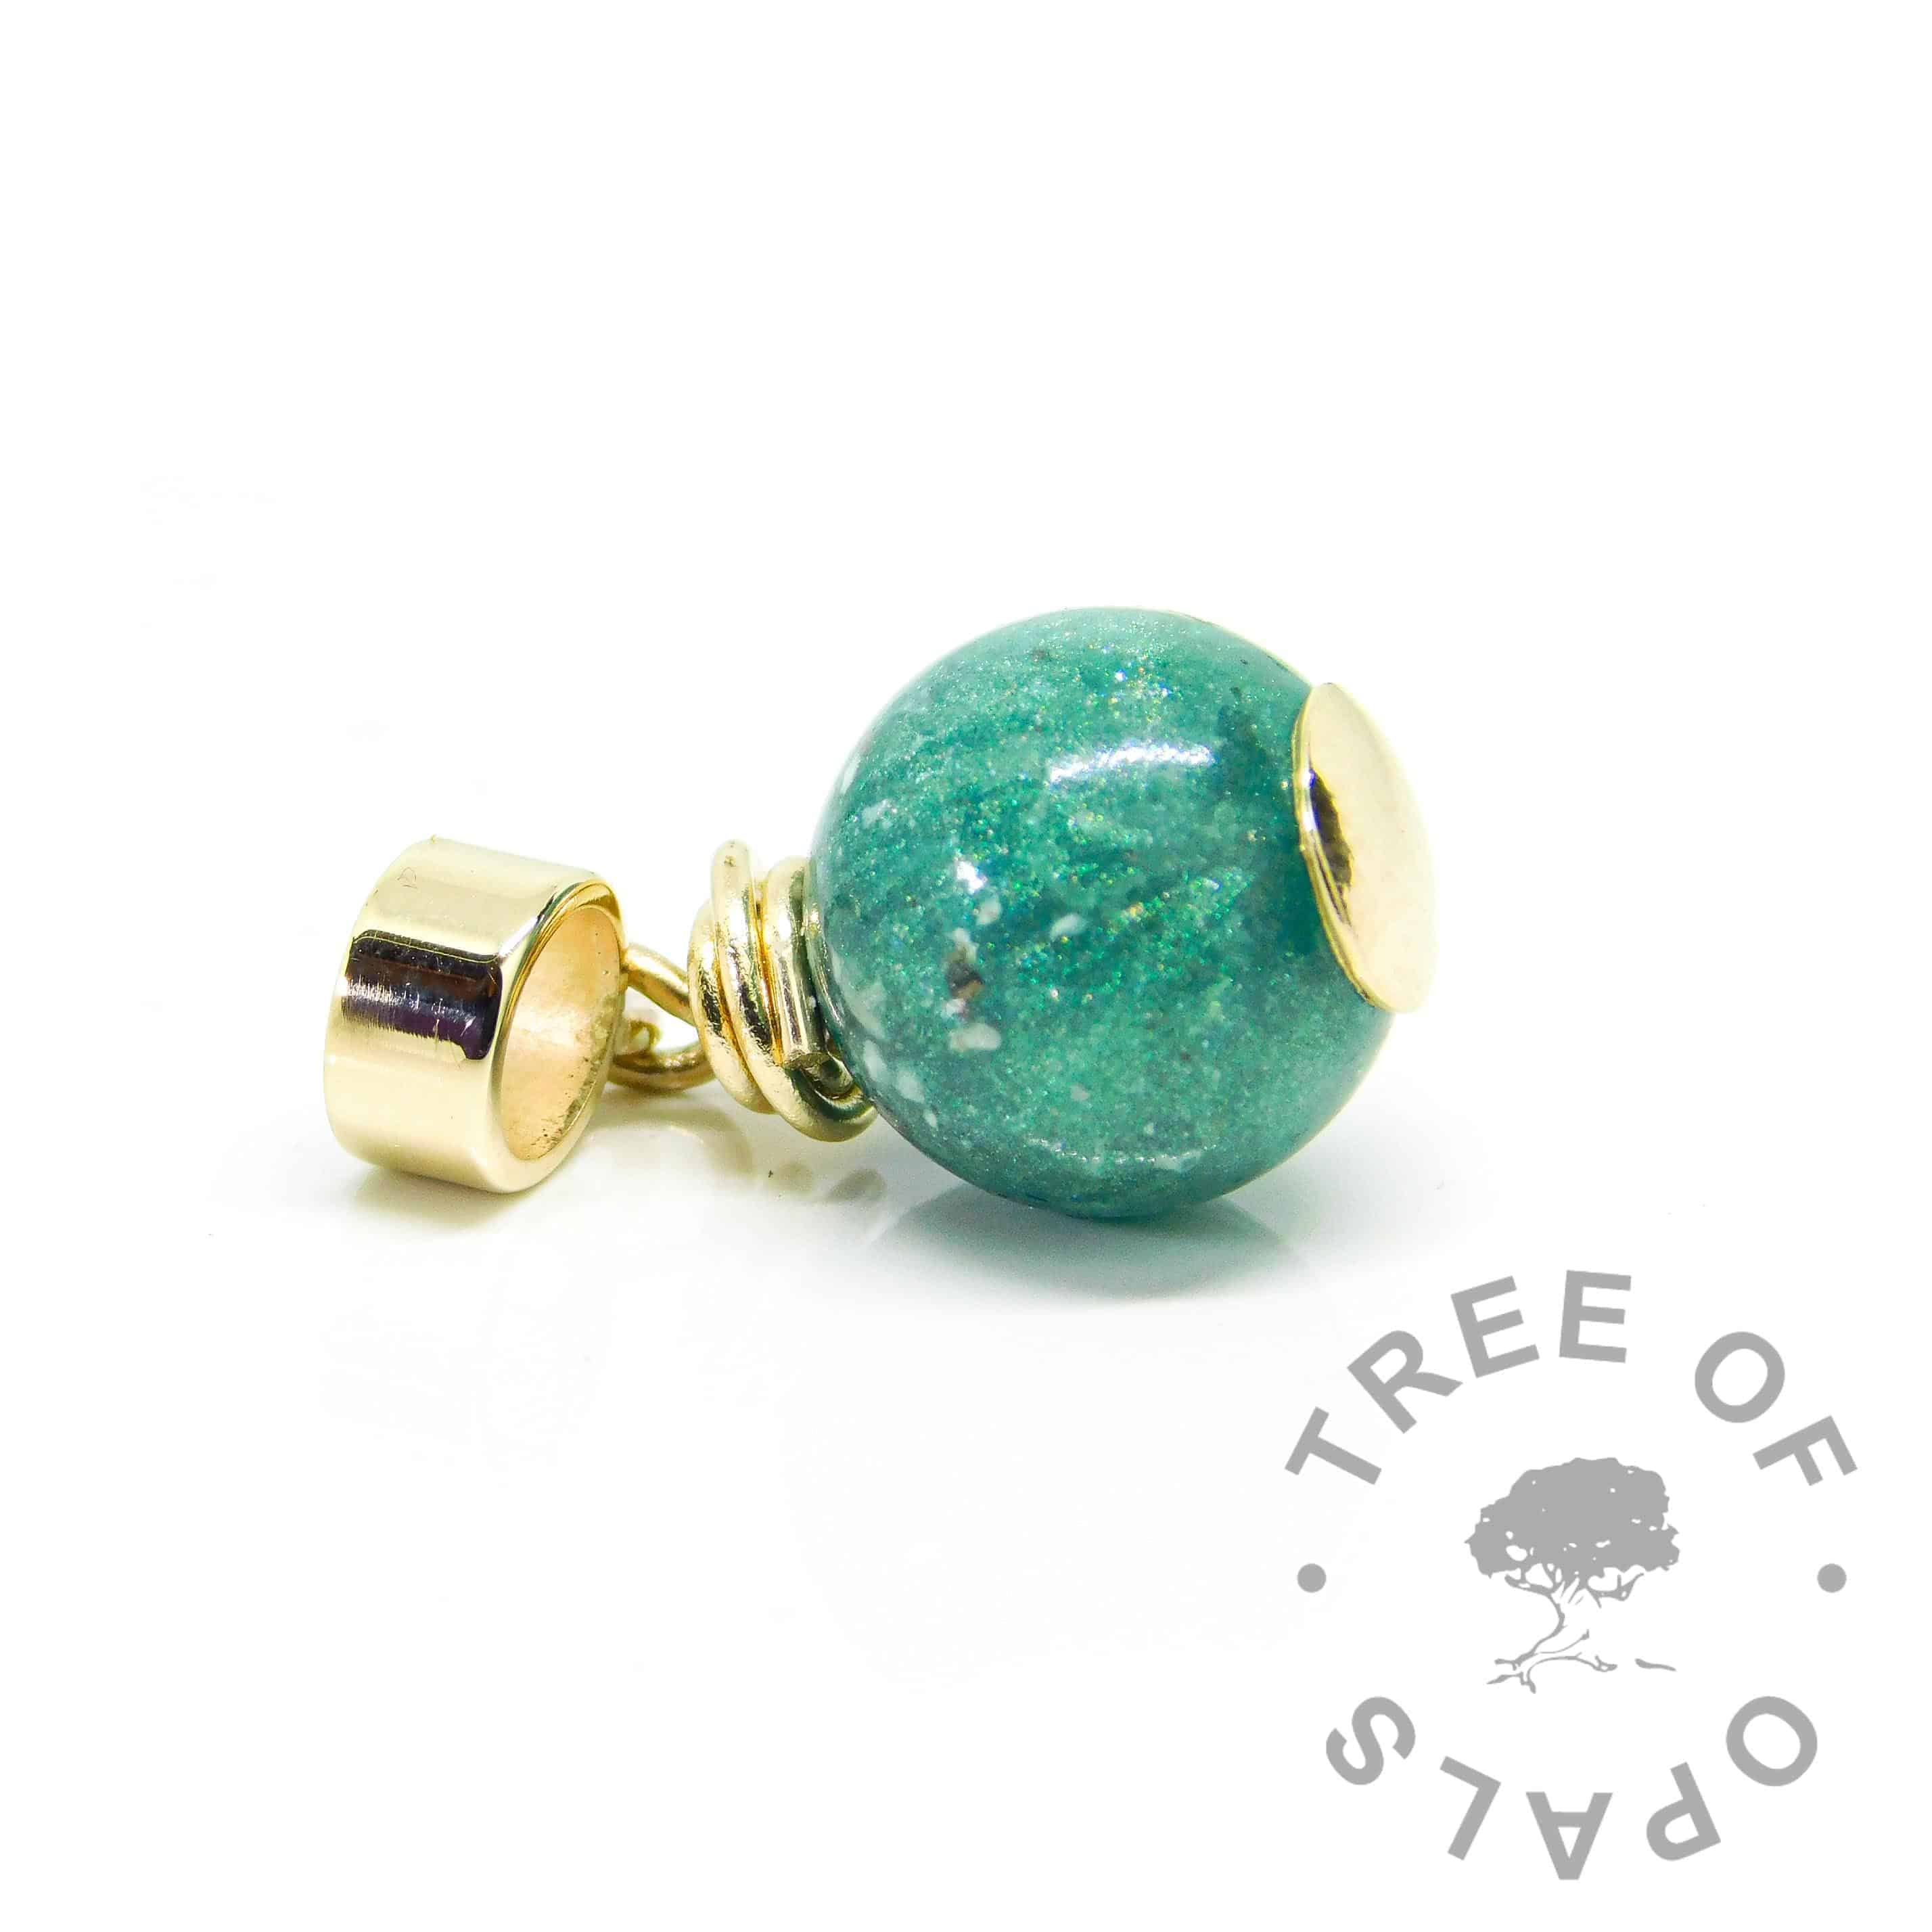 gold ashes orb teal. Mermaid teal resin sparkle mix with cremation ashes, solid 9ct gold wire wrapped setting with European dangle charm setting